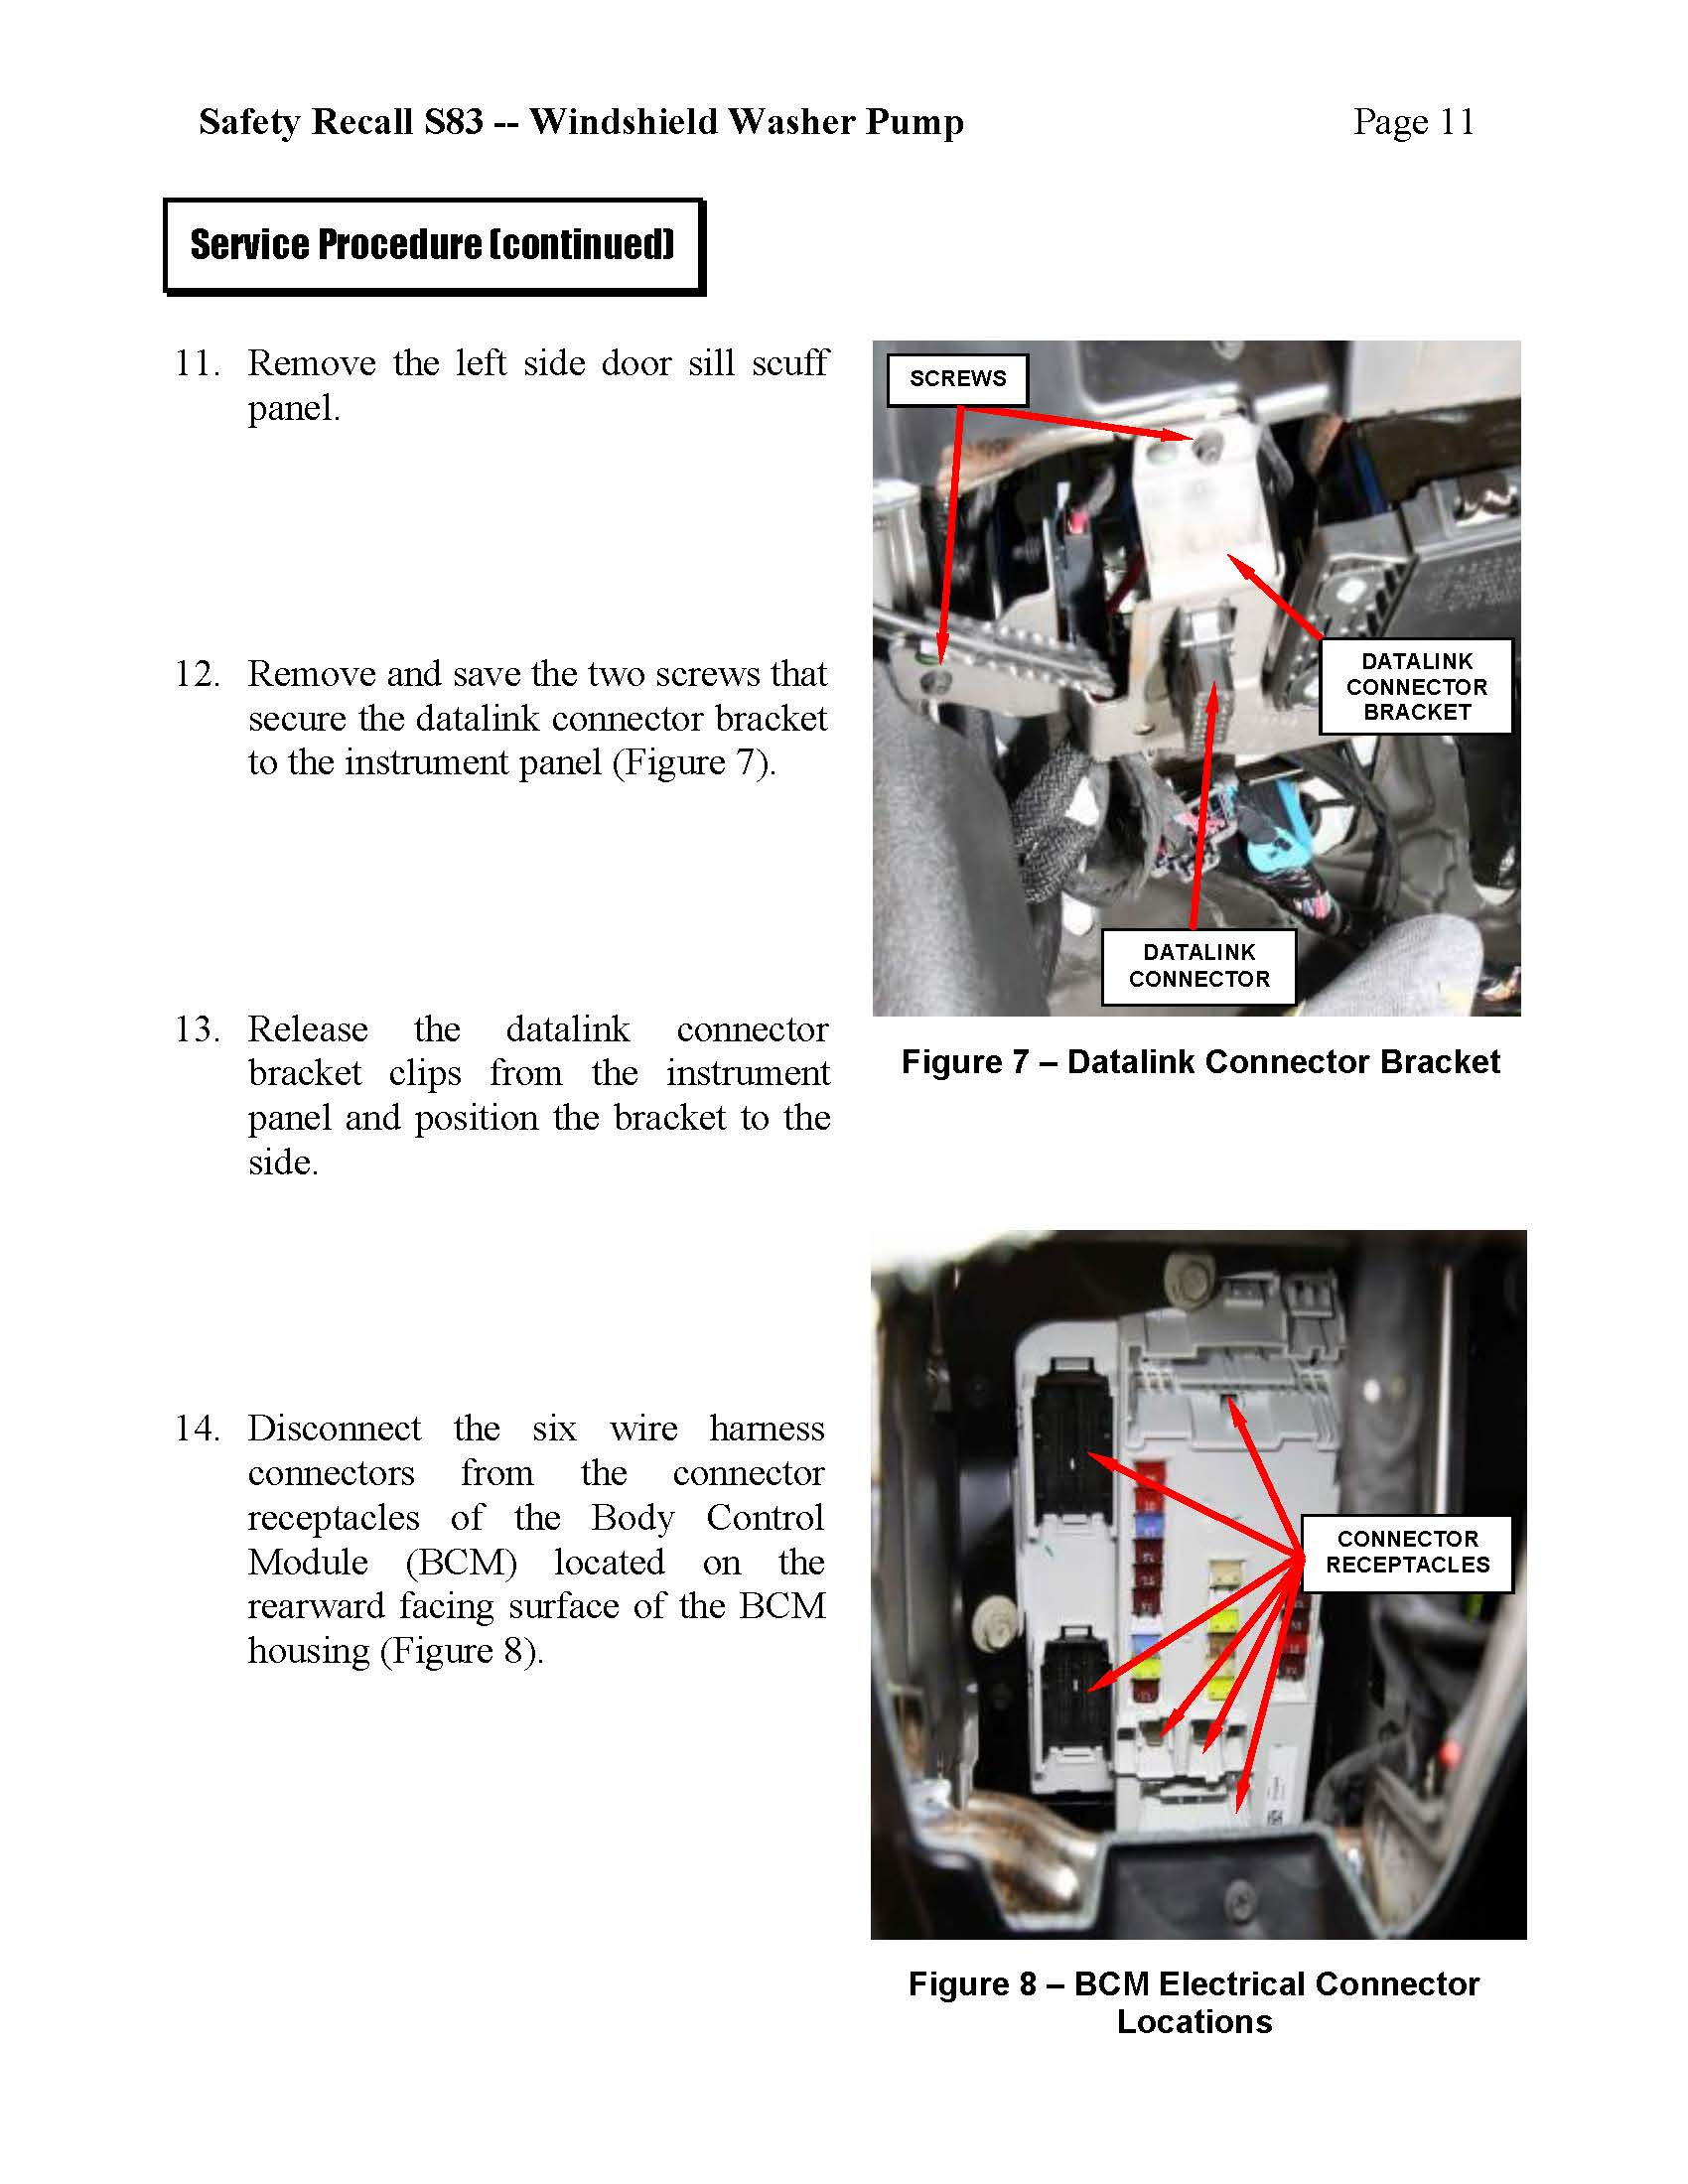 81929d1483540581 safety recall s83 nhtsa 16v 813 windshield washer pump safety recall s83_page_11 dodge wire harness recall wiring diagrams